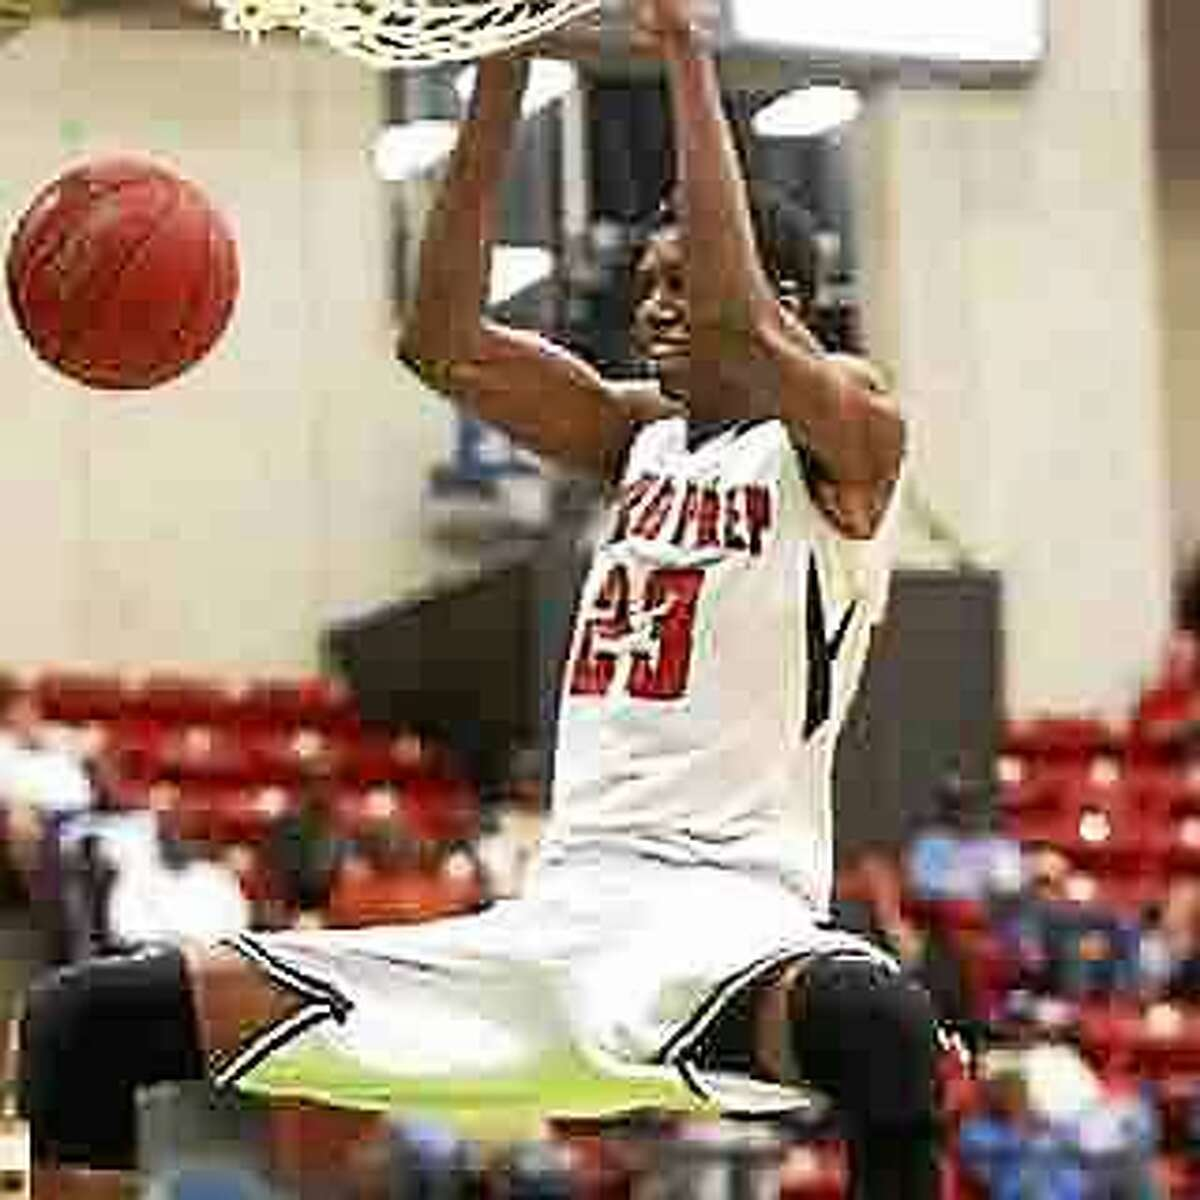 Top 30 recruit Juwan Durham, who is recovering from a torn ACL, has committed to UConn.